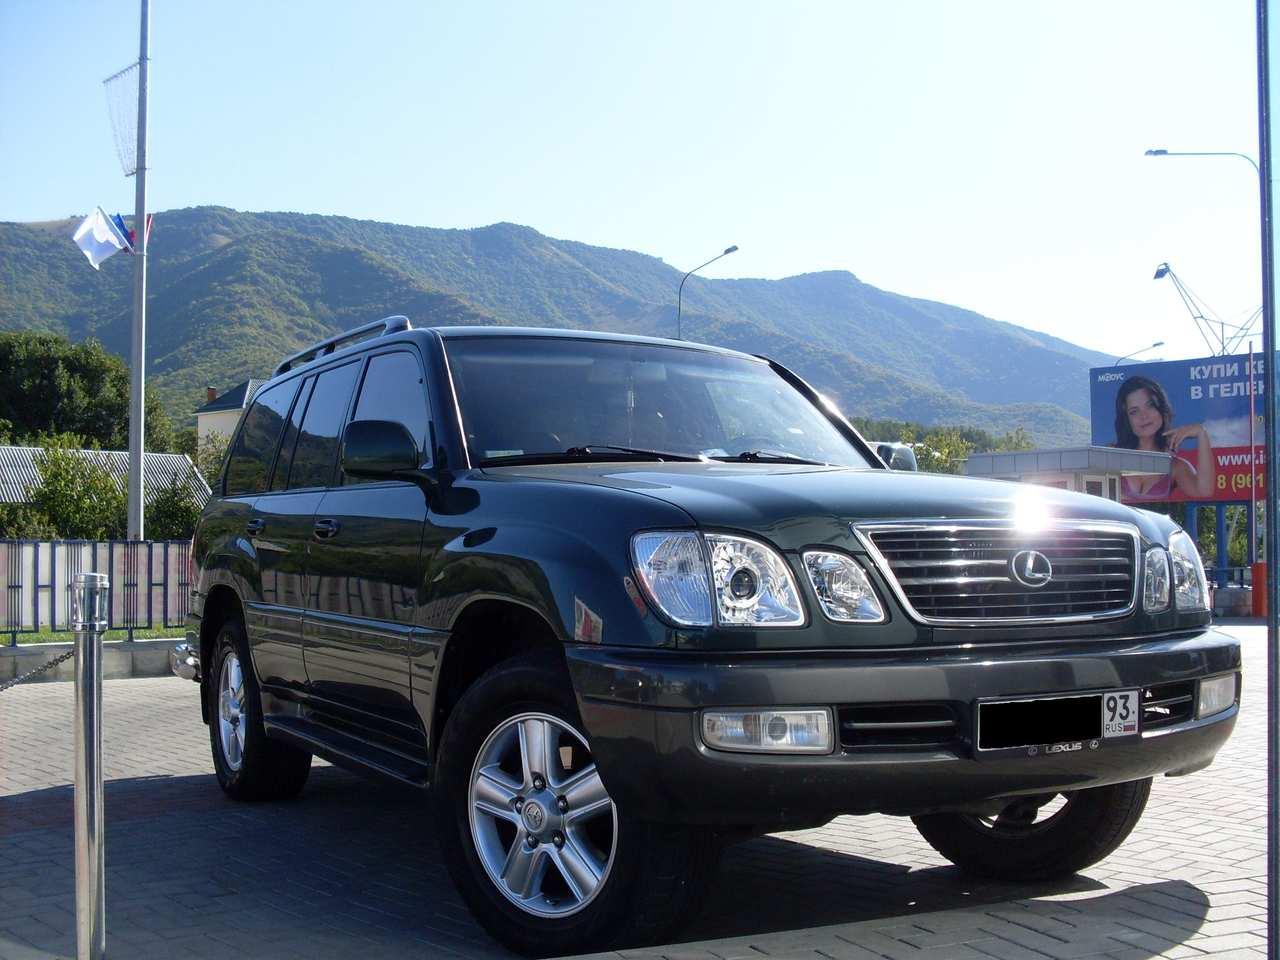 1998 lexus lx470 pictures 47l gasoline automatic for sale photo 1 enlarge photo 1280x960 1998 lexus lx470 pictures publicscrutiny Gallery